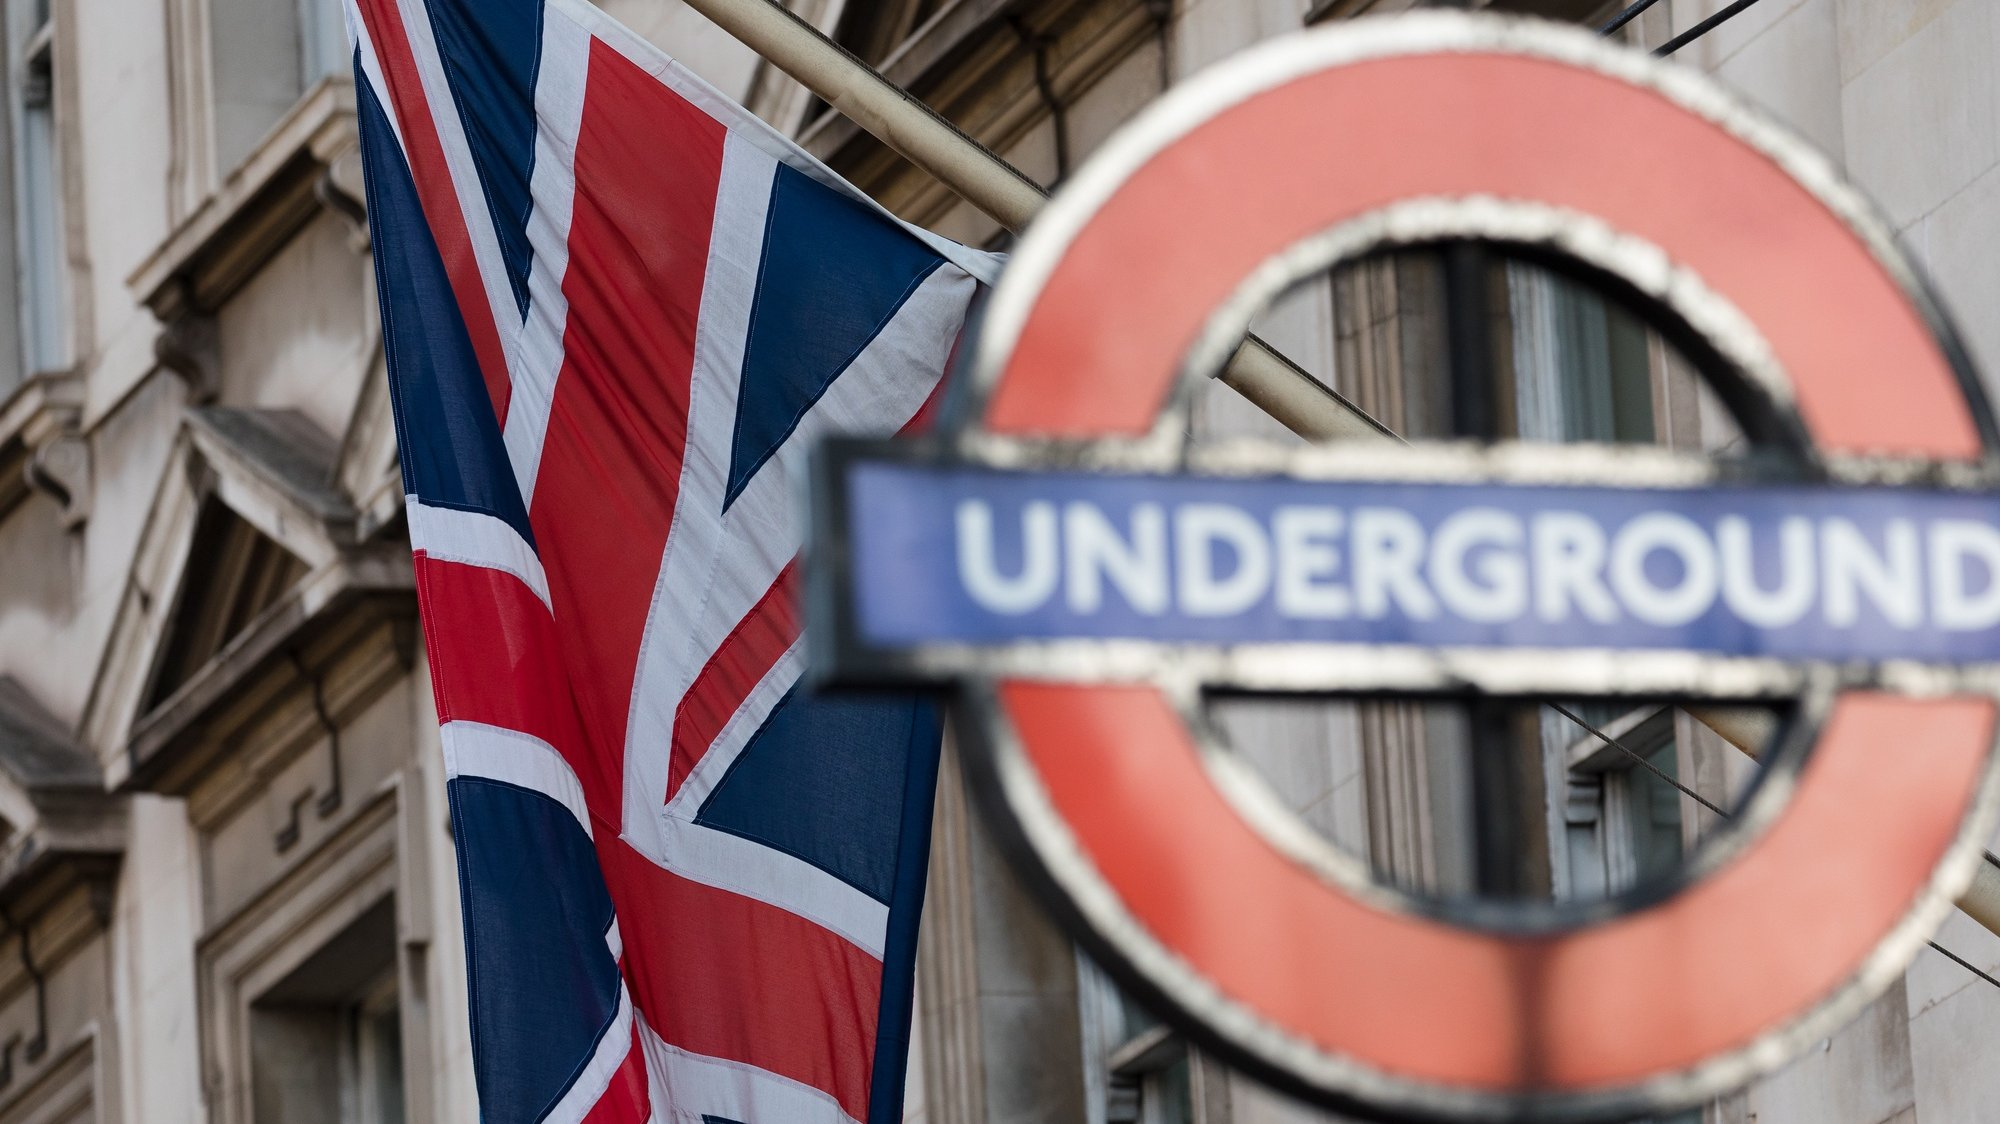 epa08863202 A Union Jack flag waves next to an underground tube sign in Westminster, London, Britain, 05 December 2020. British and EU negotiators have paused Brexit talks because they say significant divergences remain and the conditions for a deal between the two sides have not been met.  EPA/VICKIE FLORES